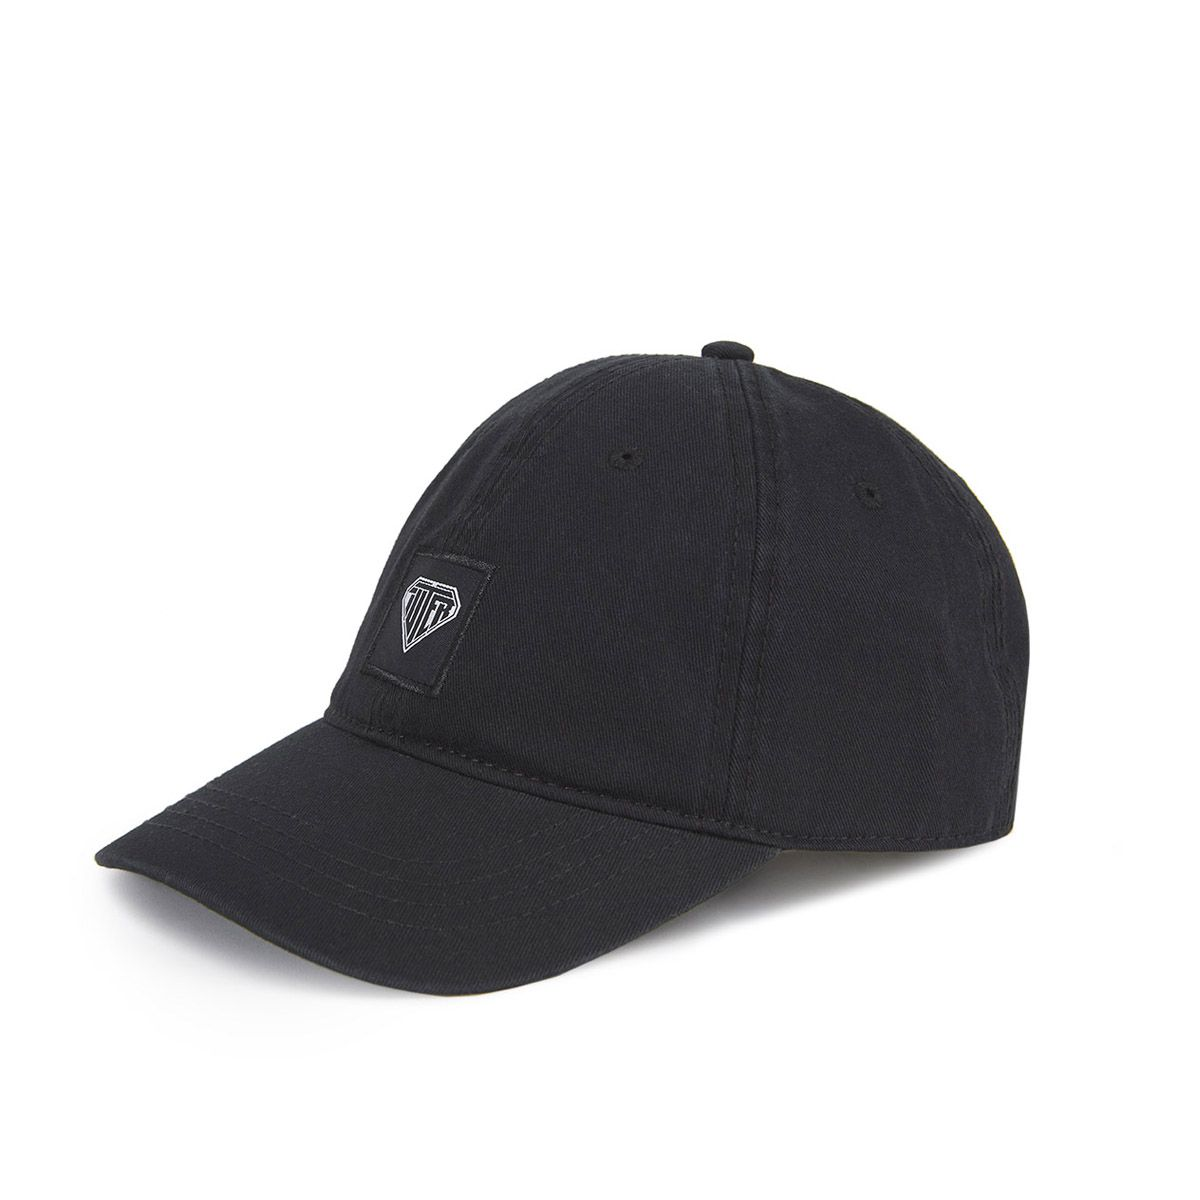 LOGO DAD HAT BLACK